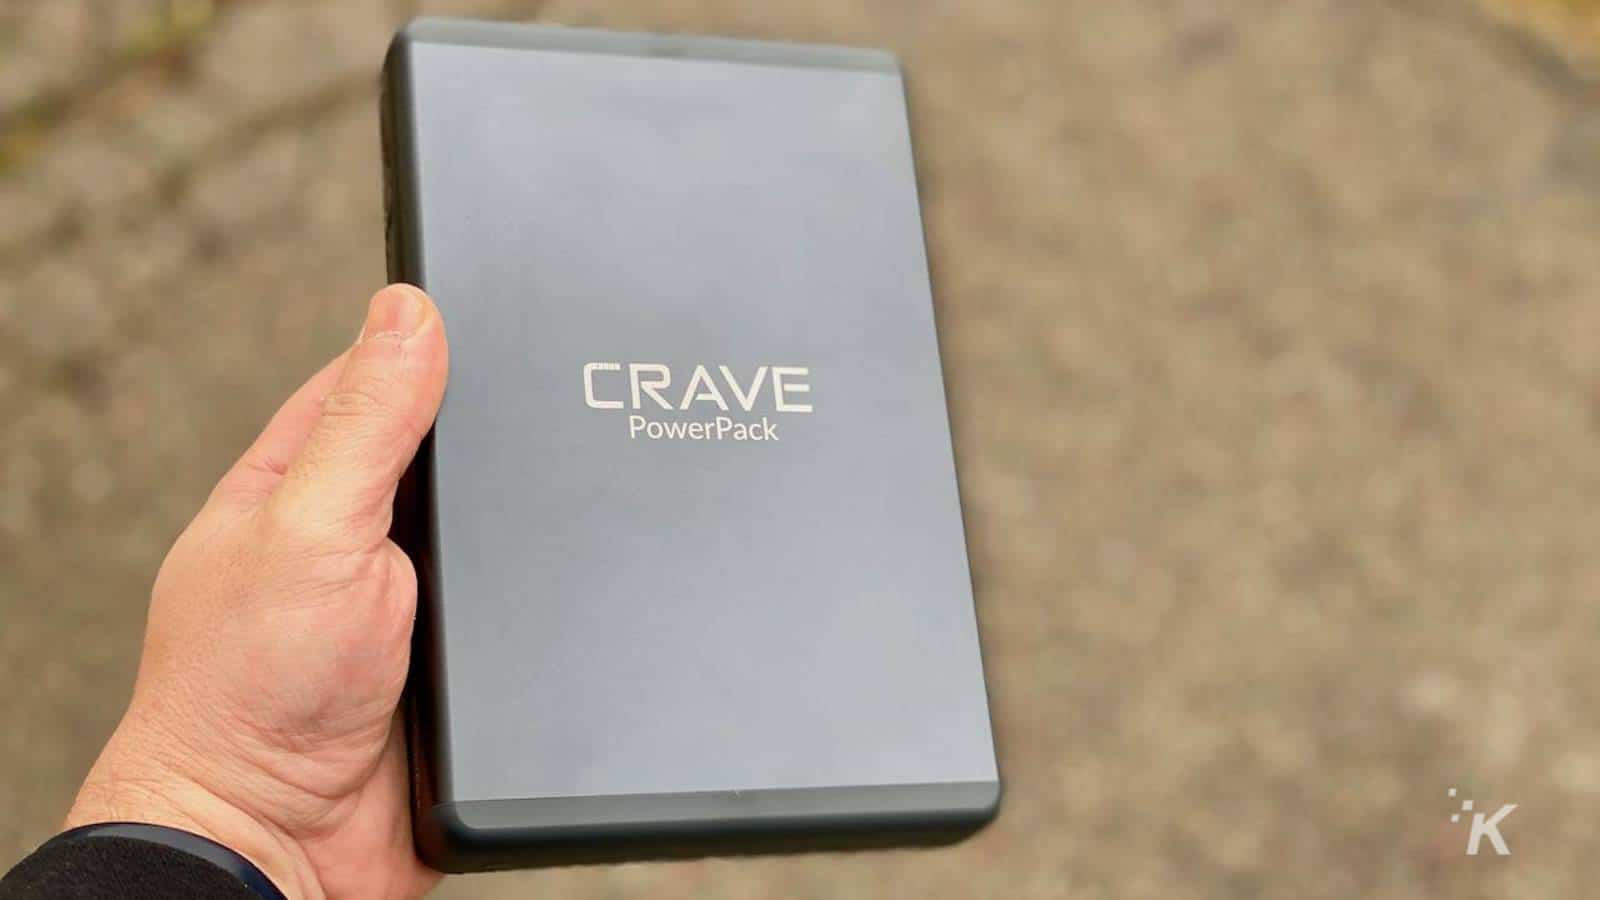 crave powerpack 2 portable battery charger